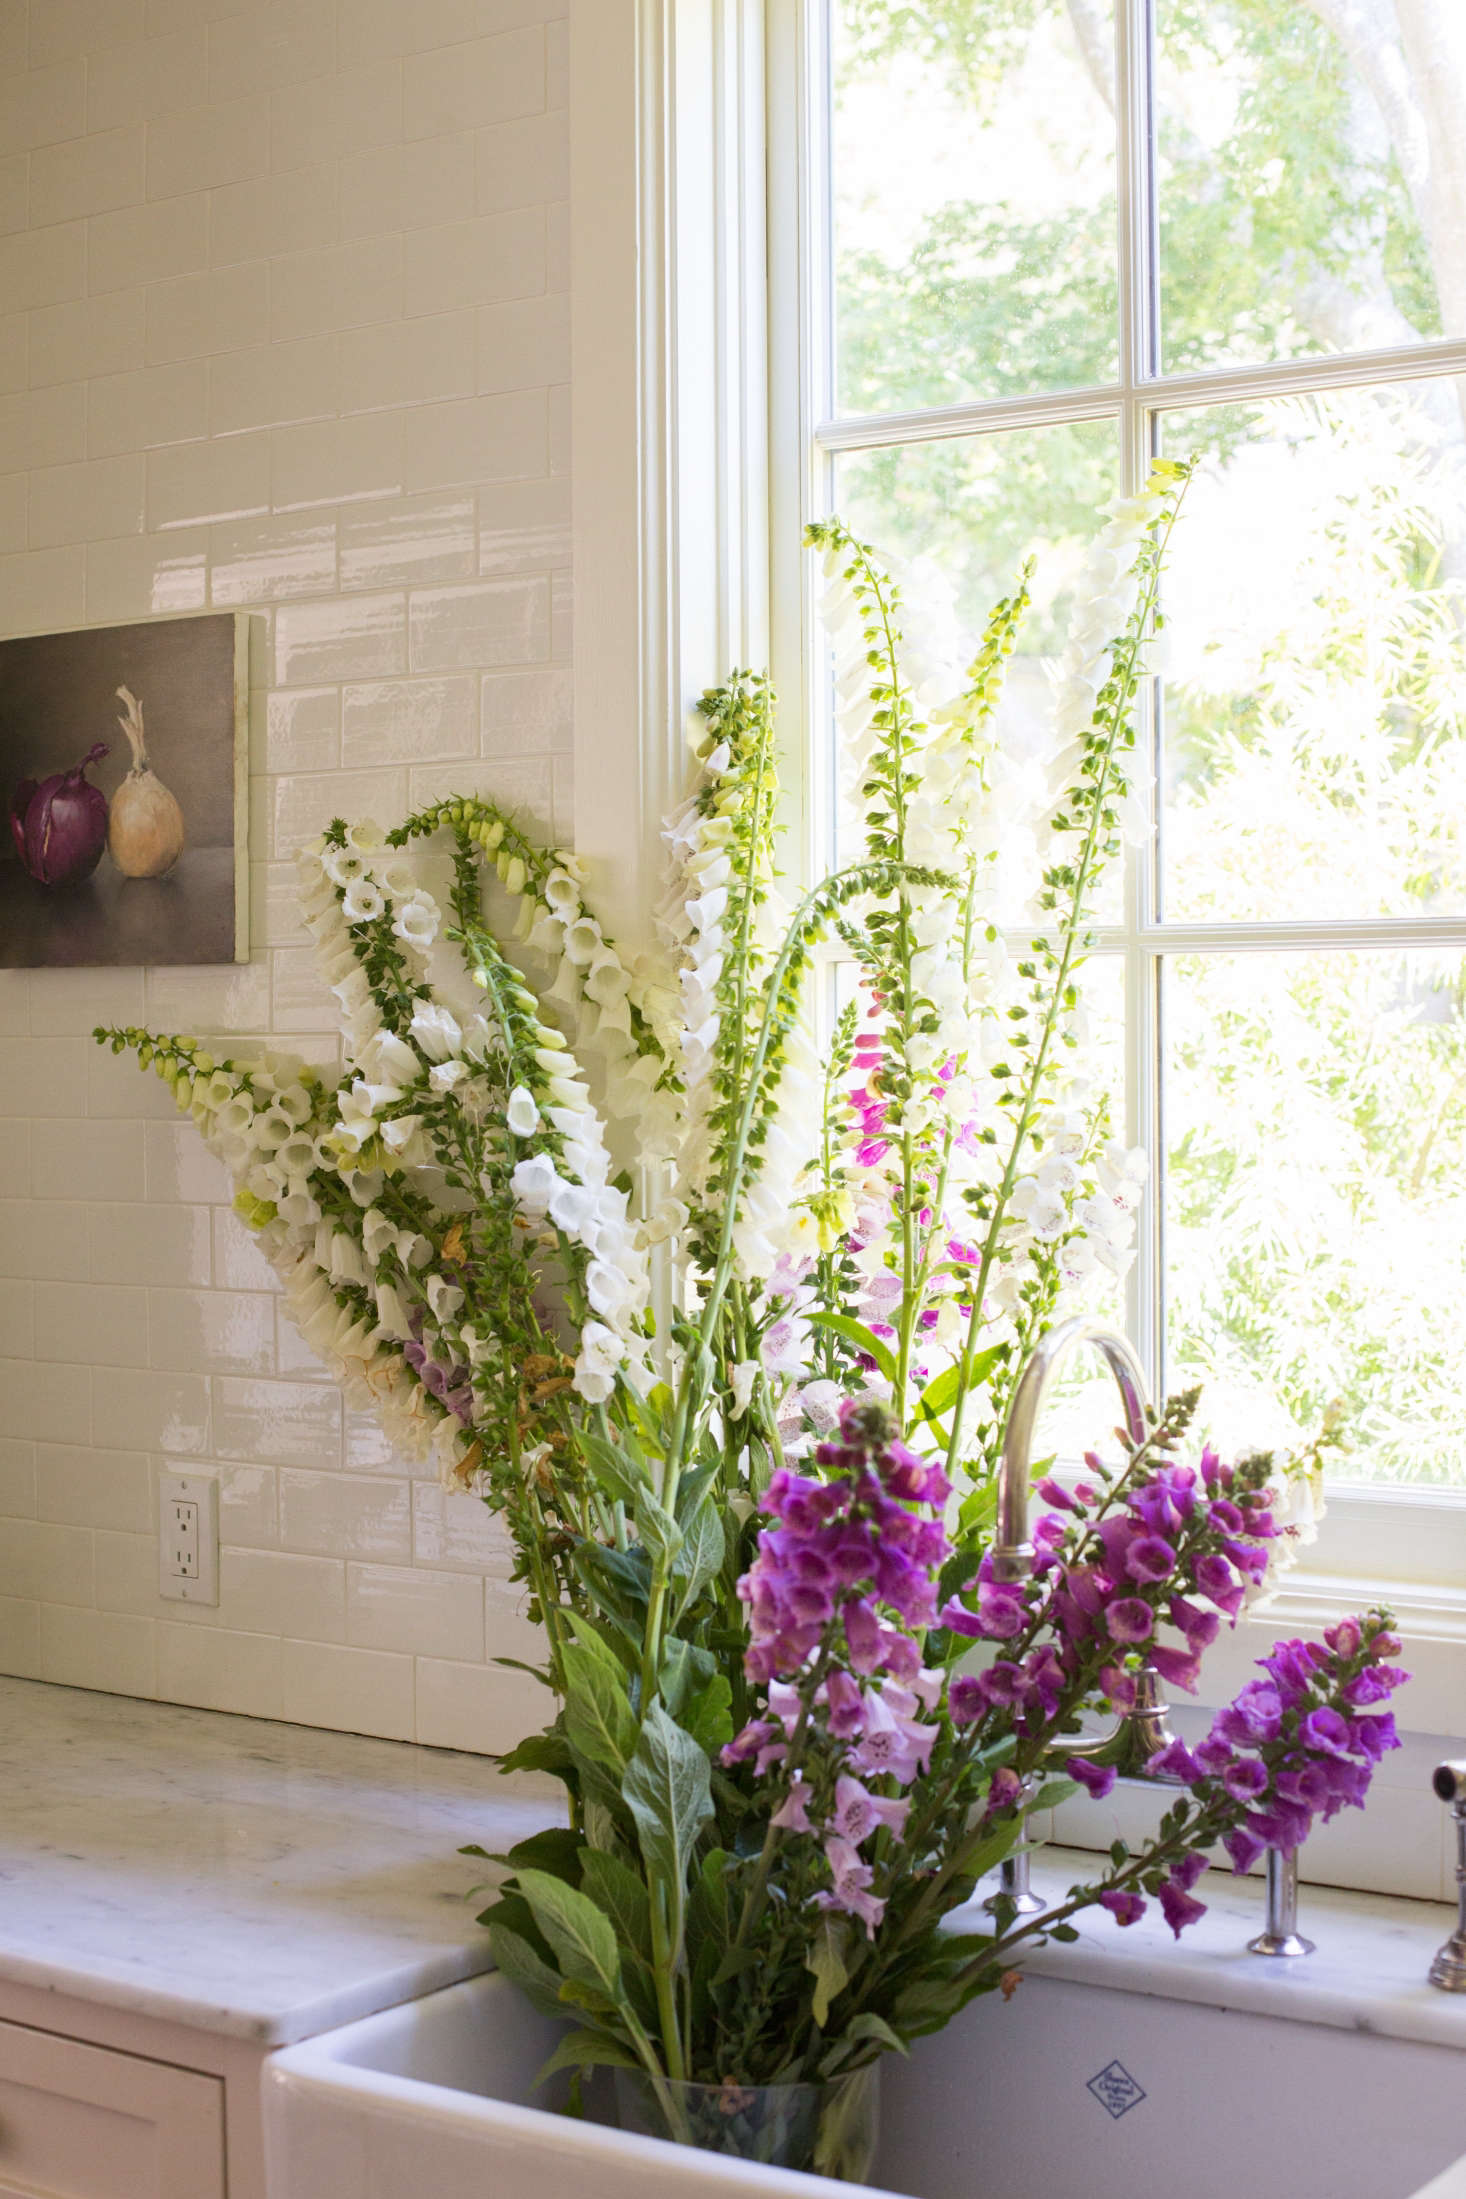 I cut an armload of flowering foxgloves, clipping the stemsatthe base of the plant.